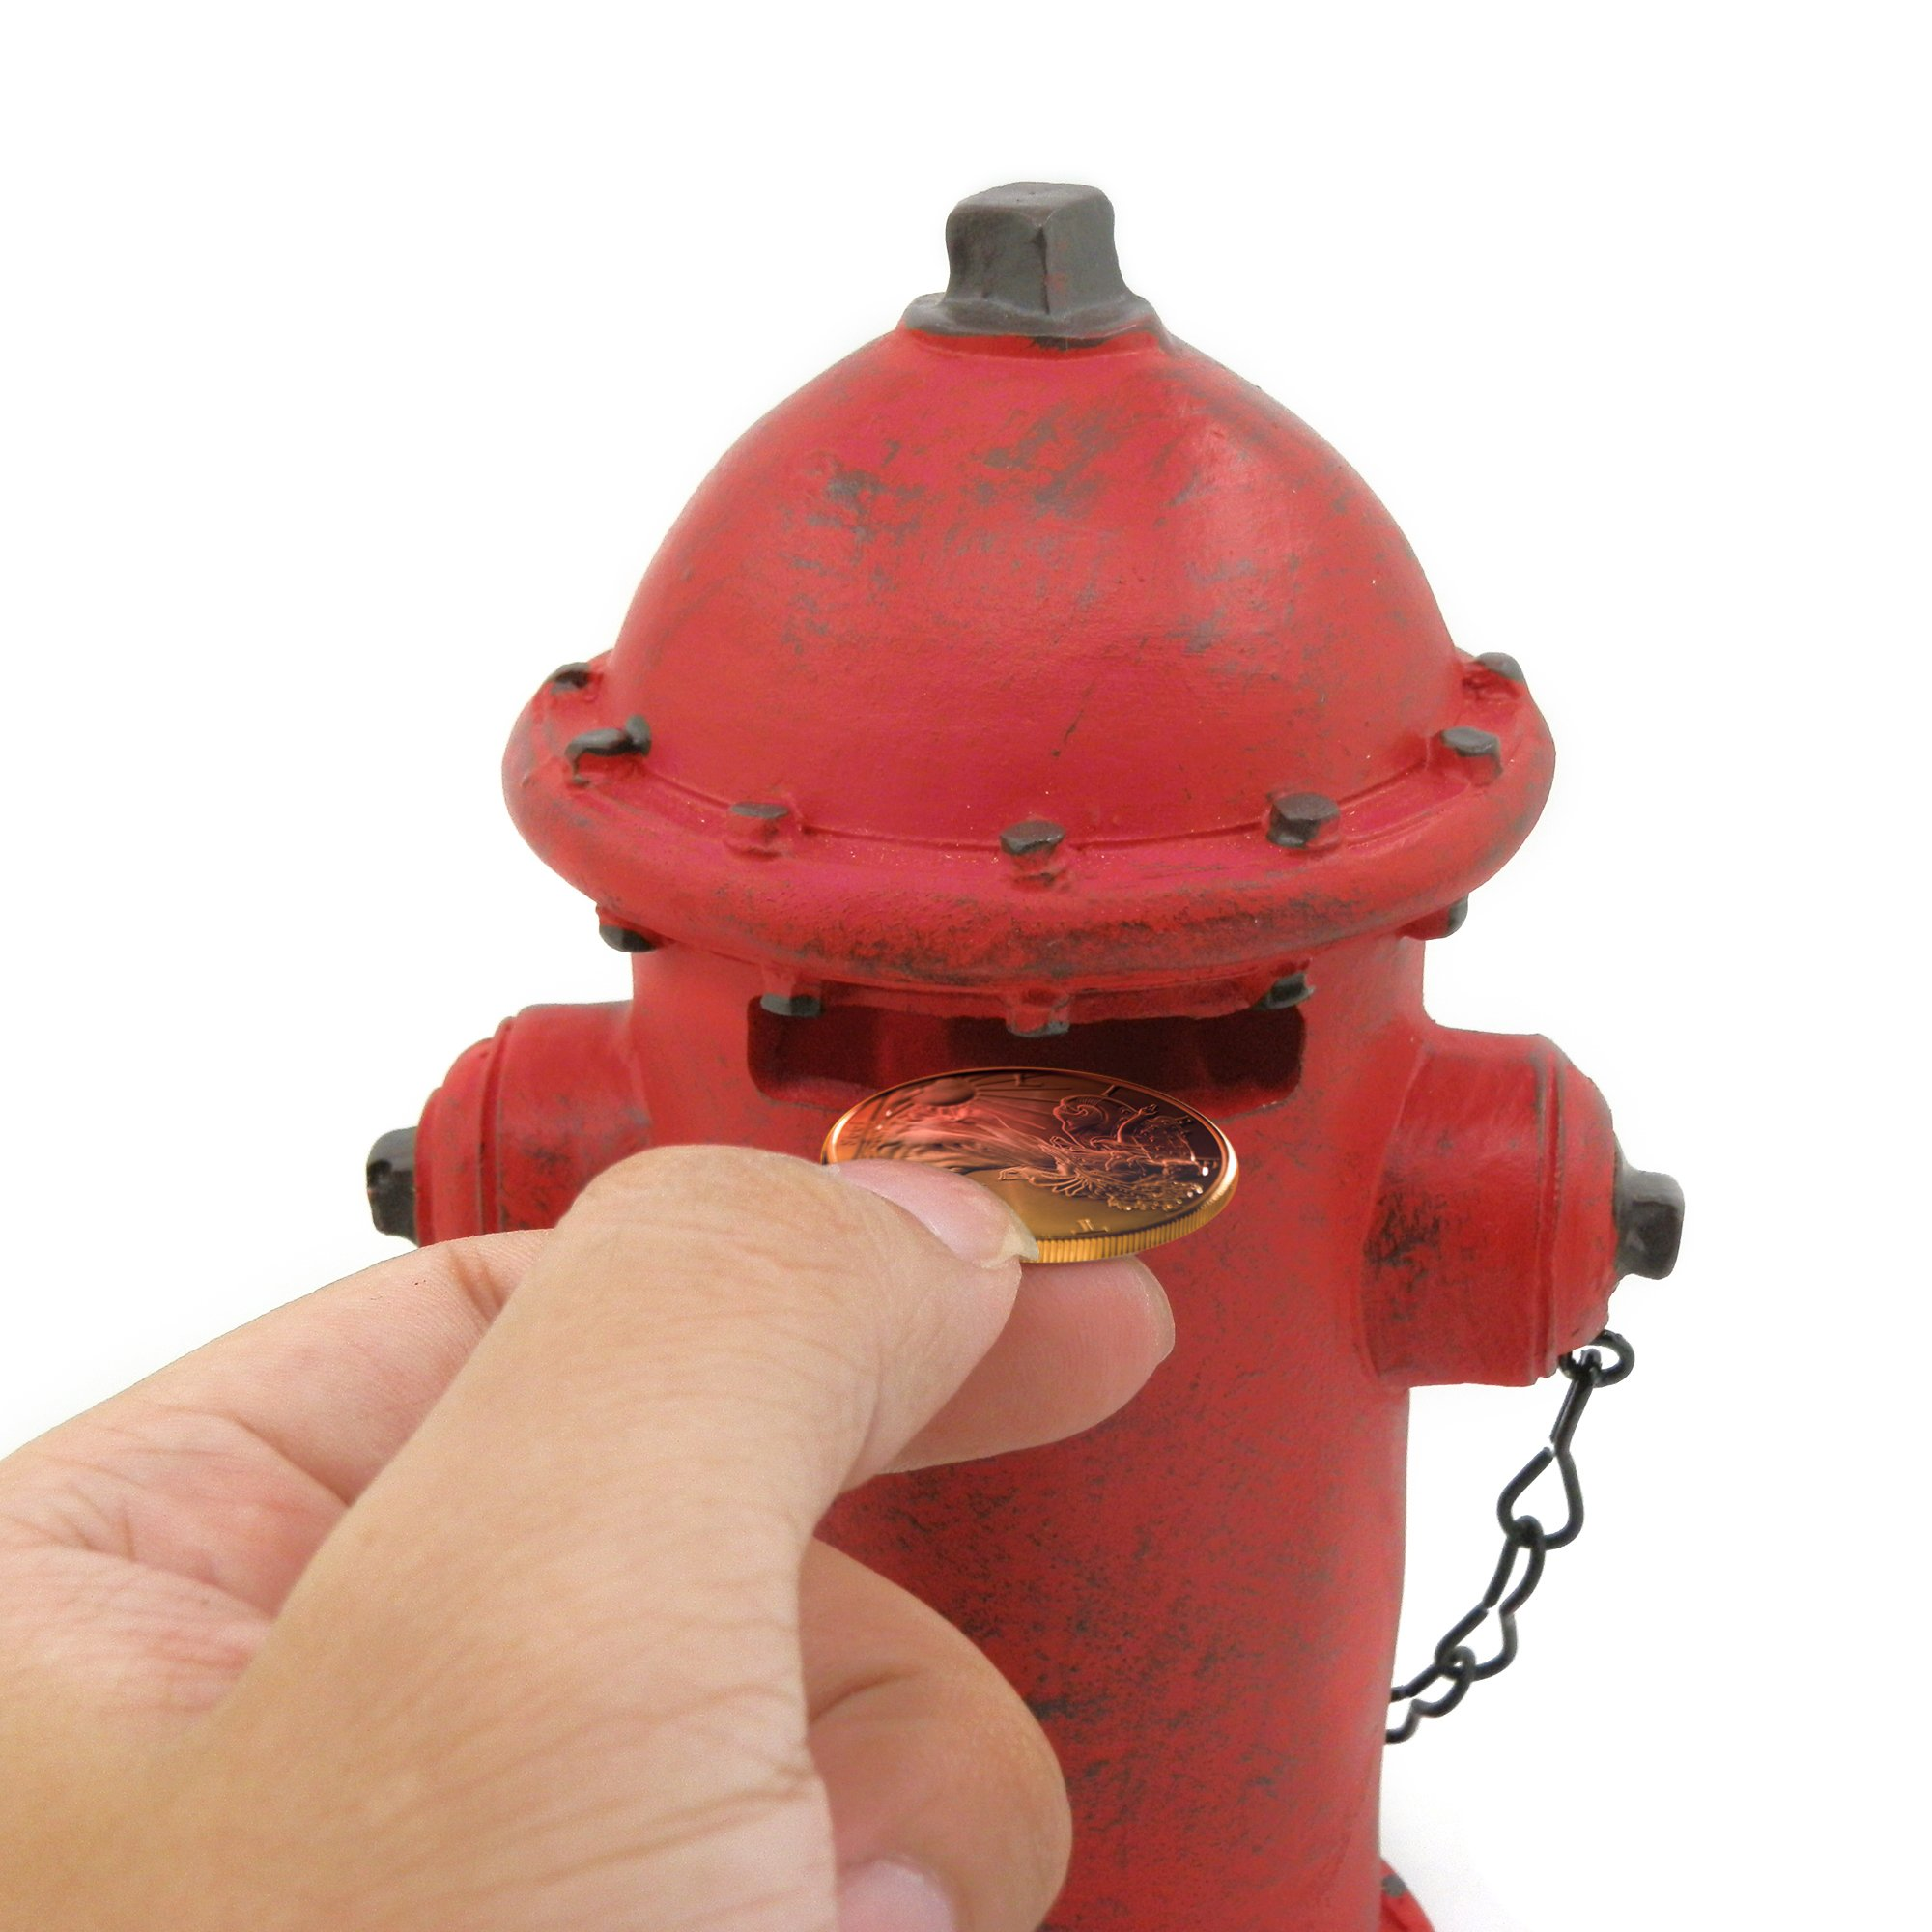 ornerx Fire Hydrant Money Box Resin Piggy Bank